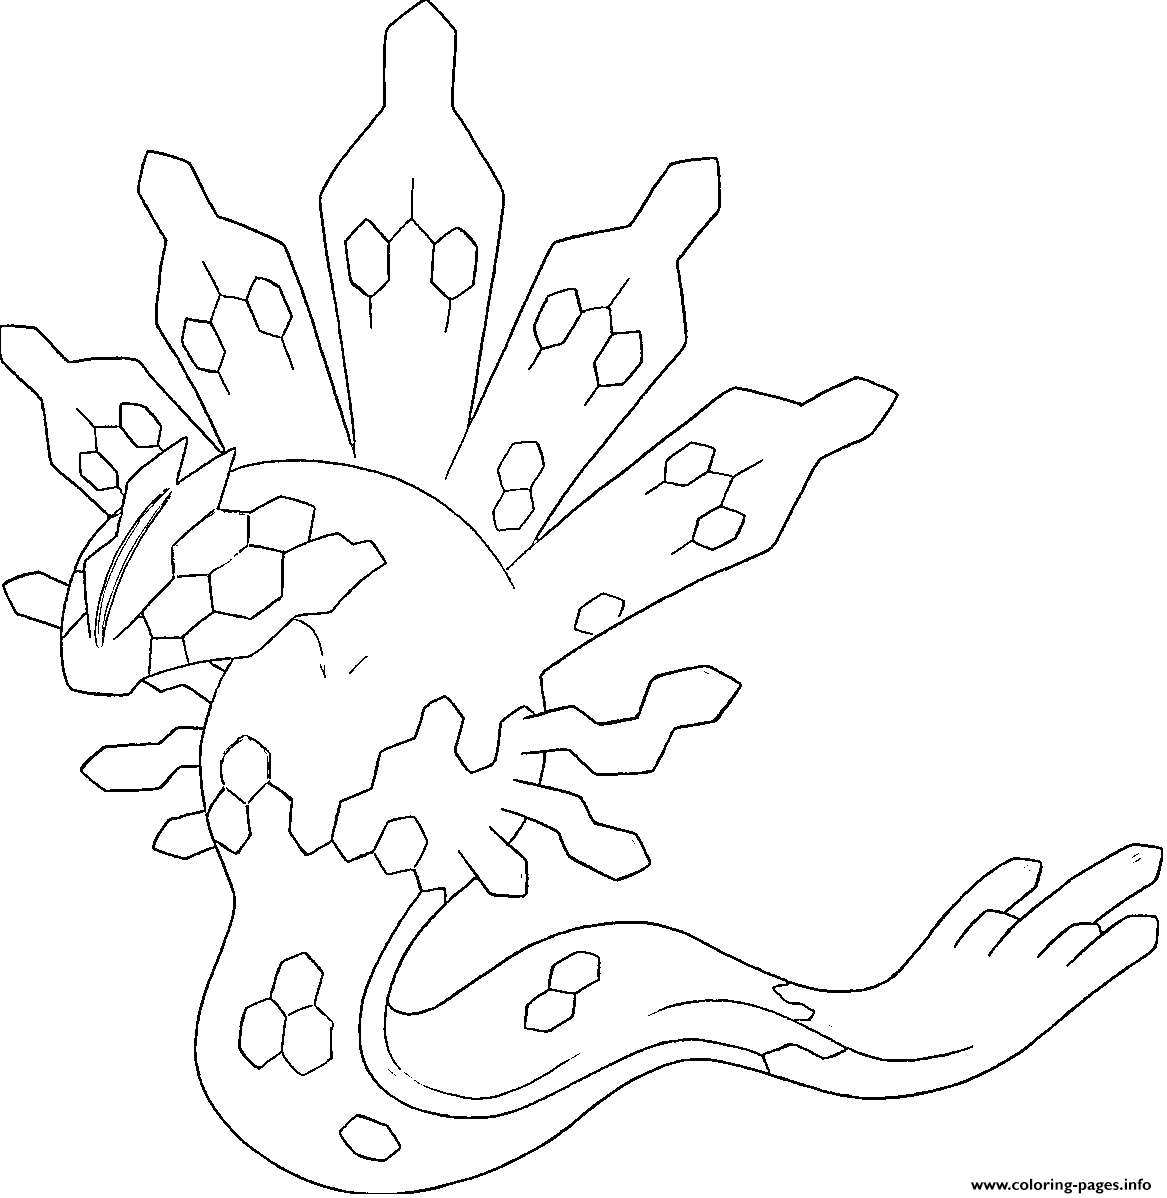 Zygarde Xy Pokemon Legendary Generation 6 Coloring Pages Printable